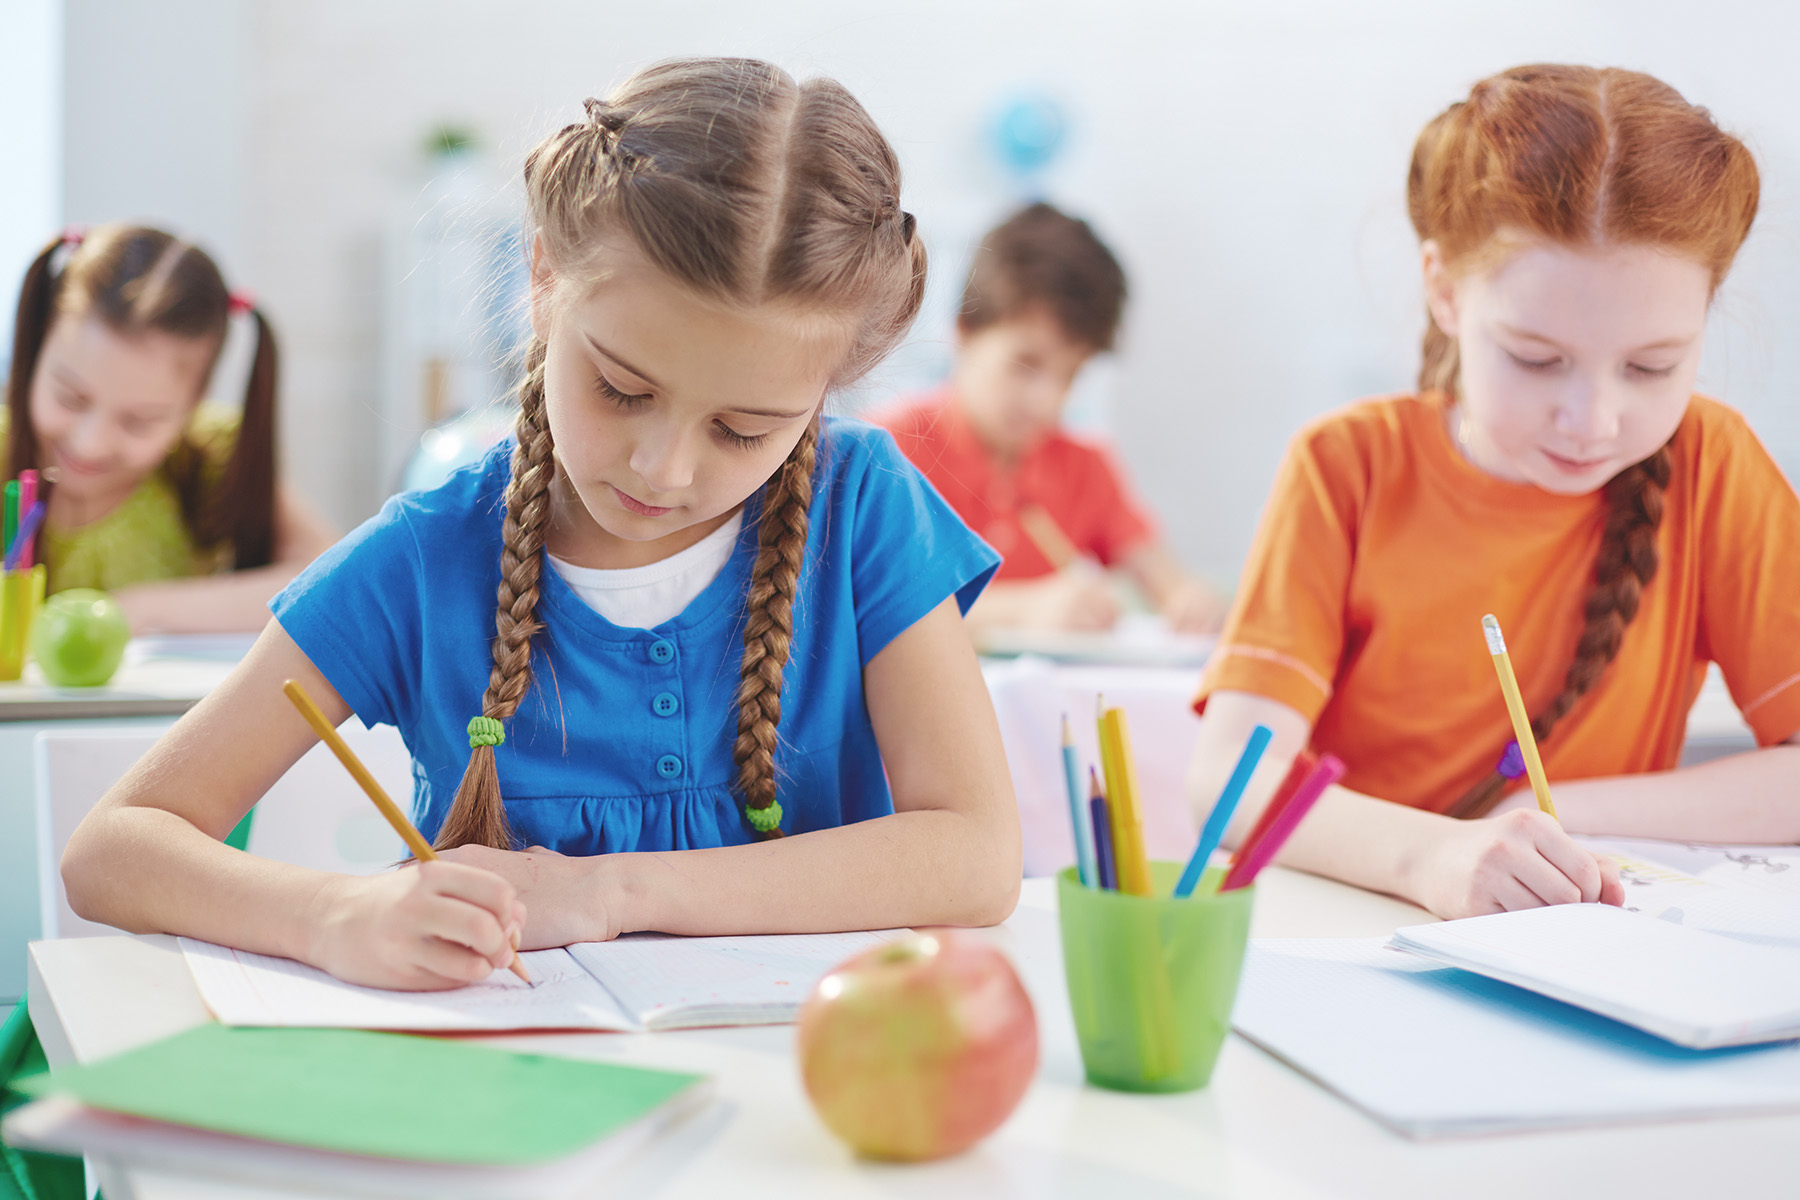 How to prepare for 1st grade? What does a preschooler need to know by the beginning of school?